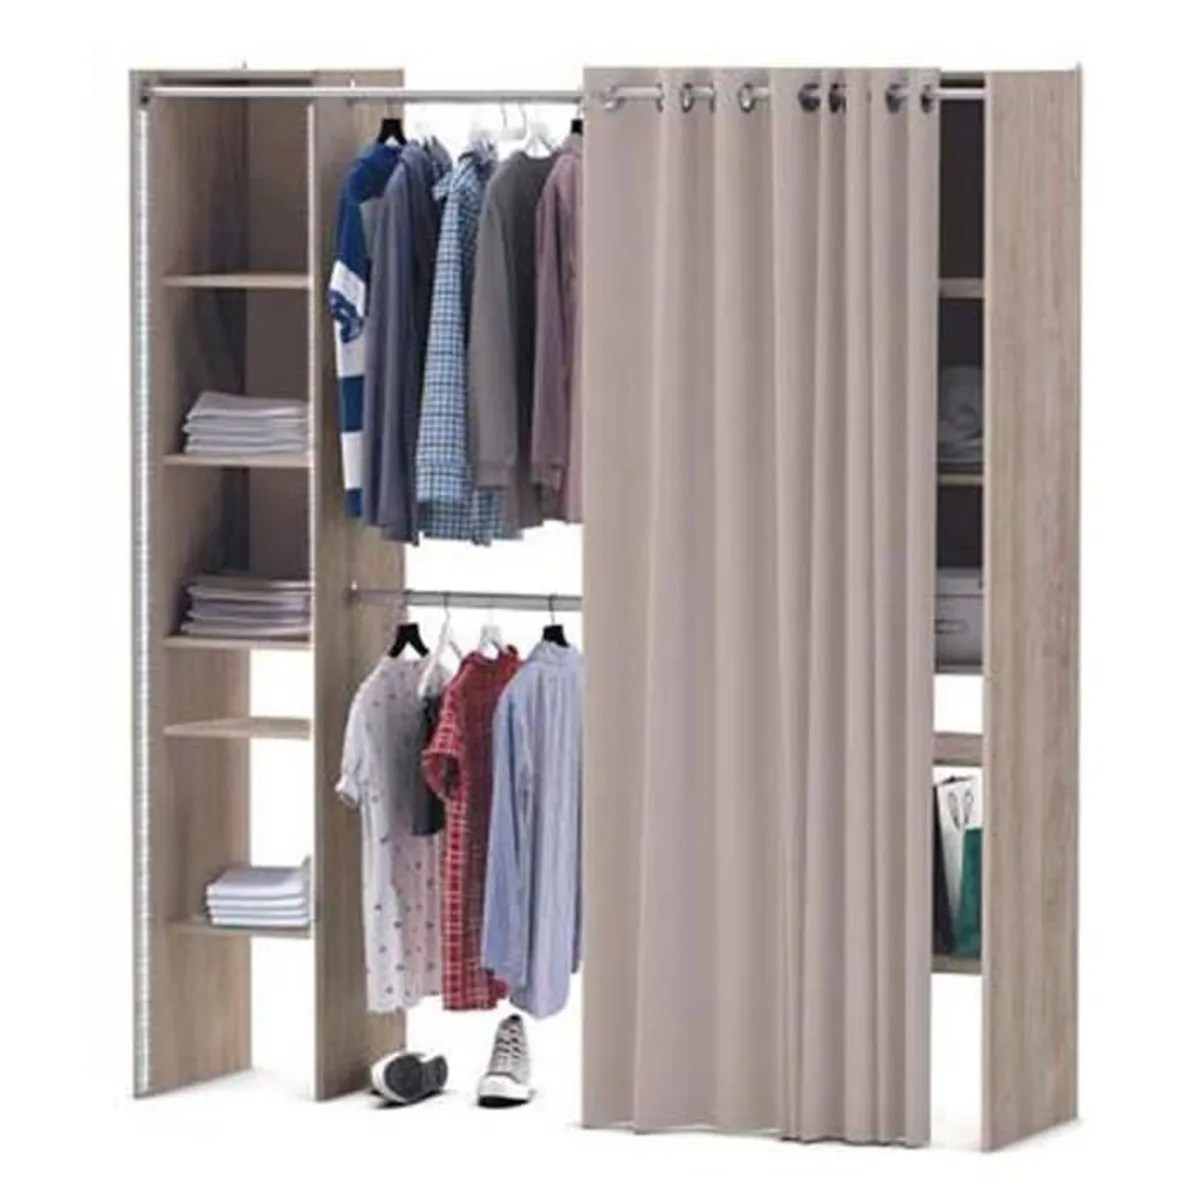 Armoire Dressing Cdiscount Dressing Achat Vente Dressing Pas Cher Cdiscount